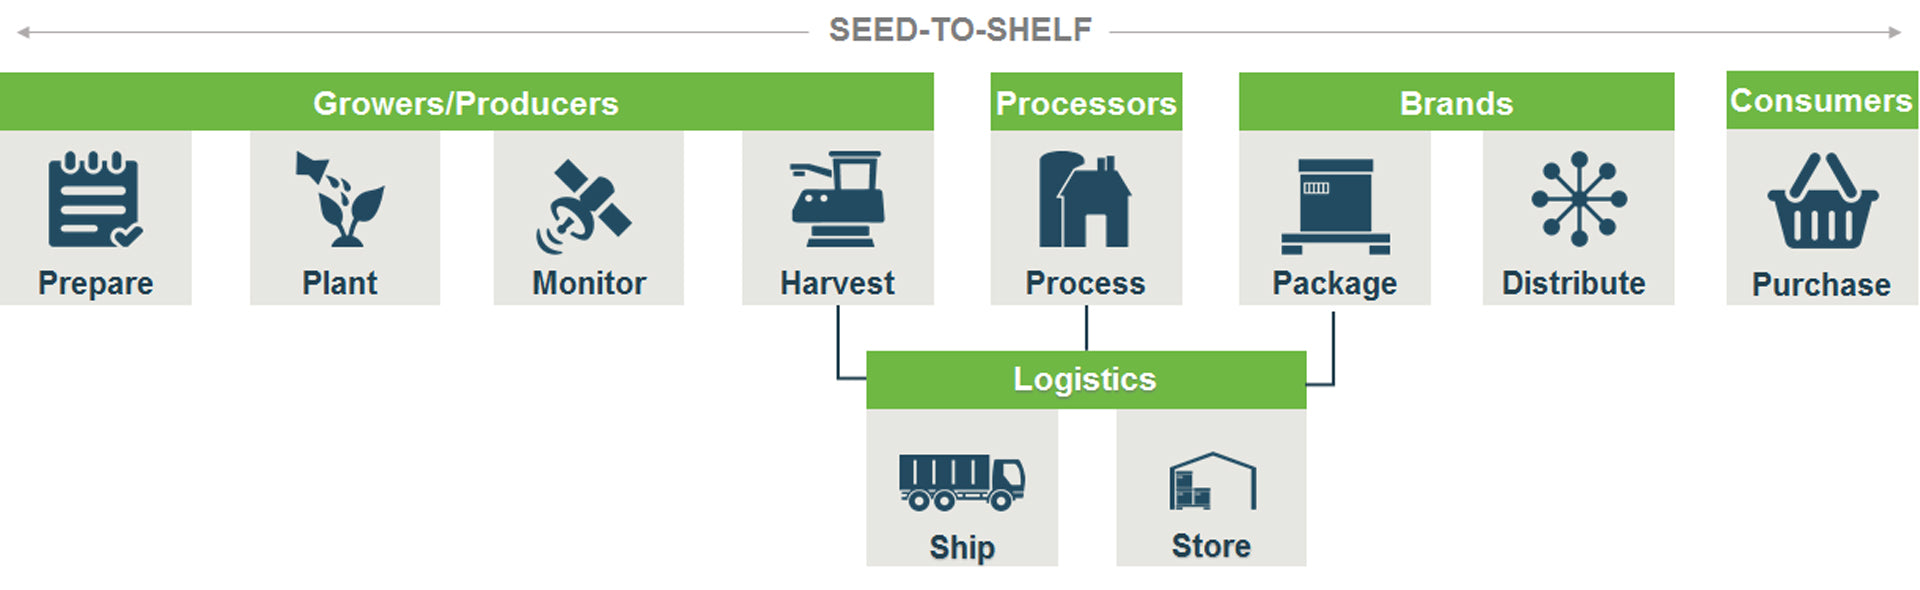 Seed to Shelf Supply Chain Example